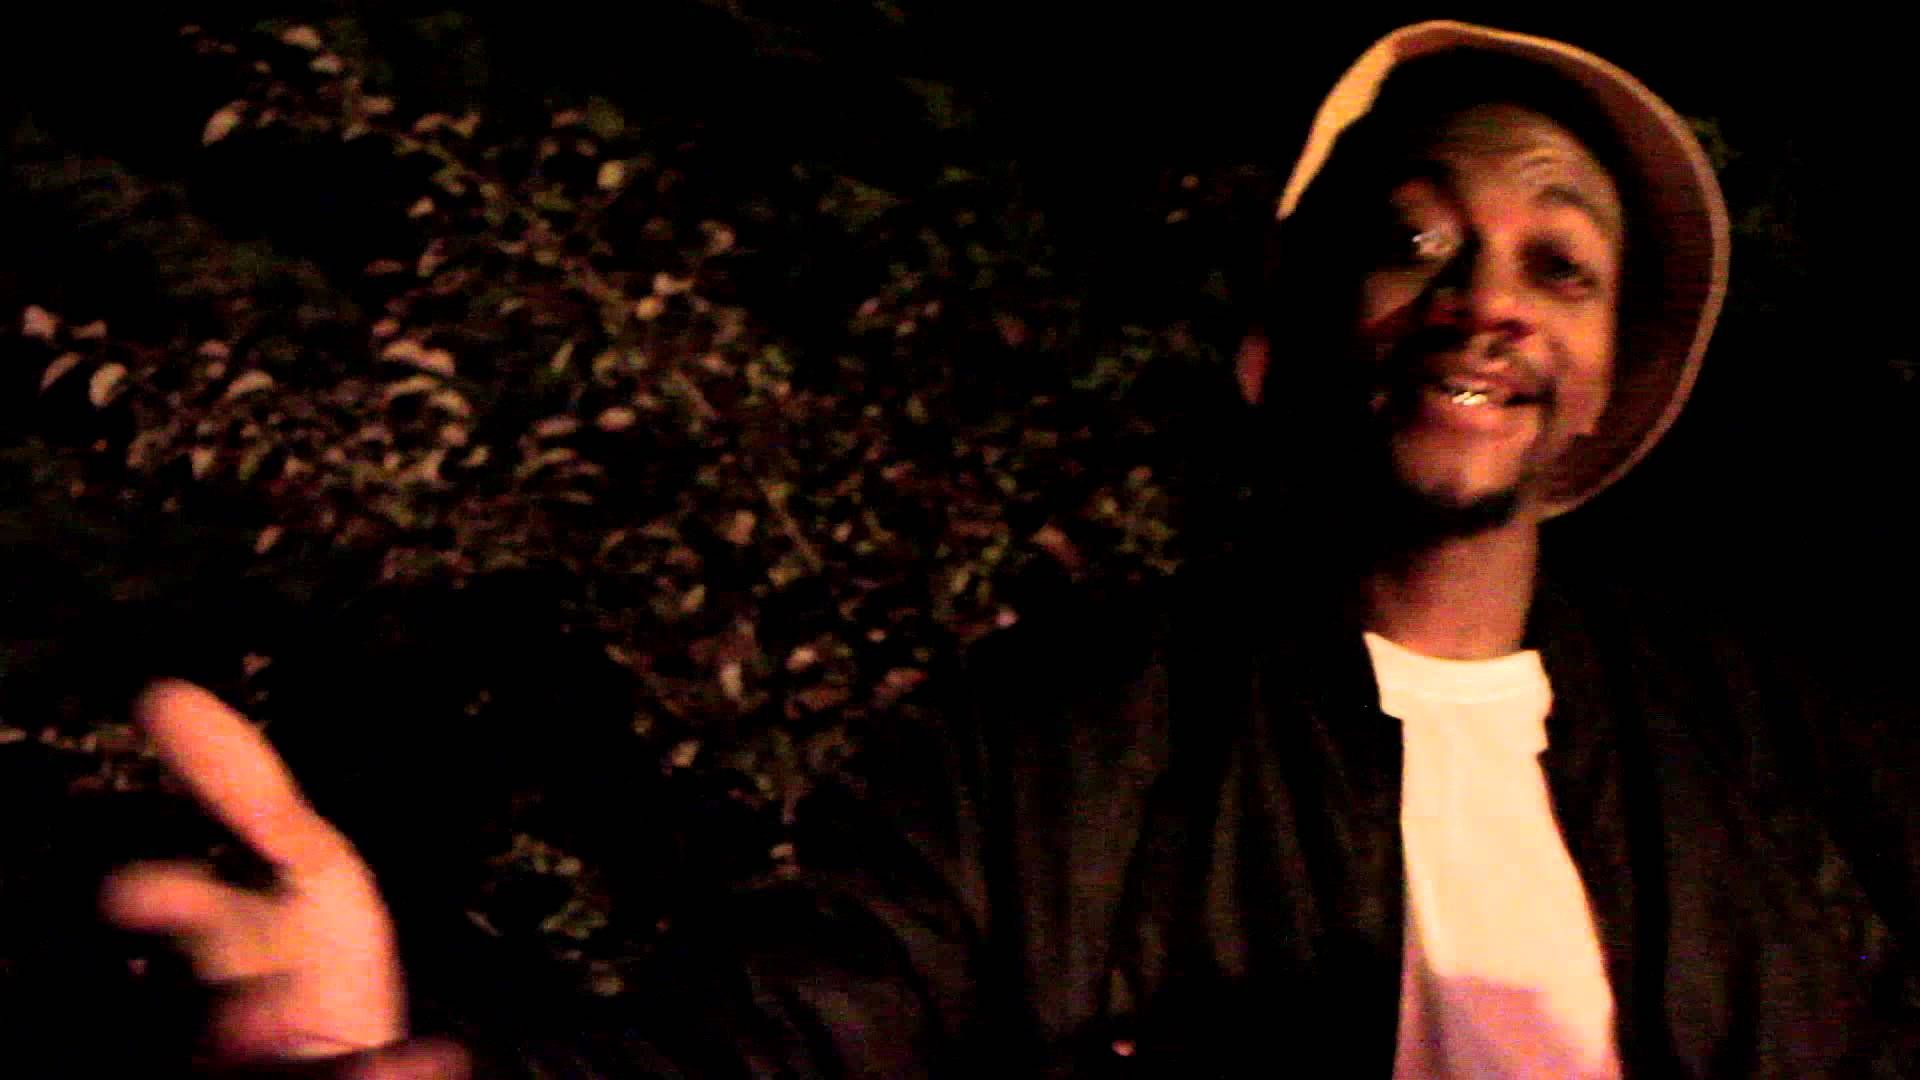 LMK (feat. Archibald SLIM, Father, KCSB, & Ethereal) (Official Video)